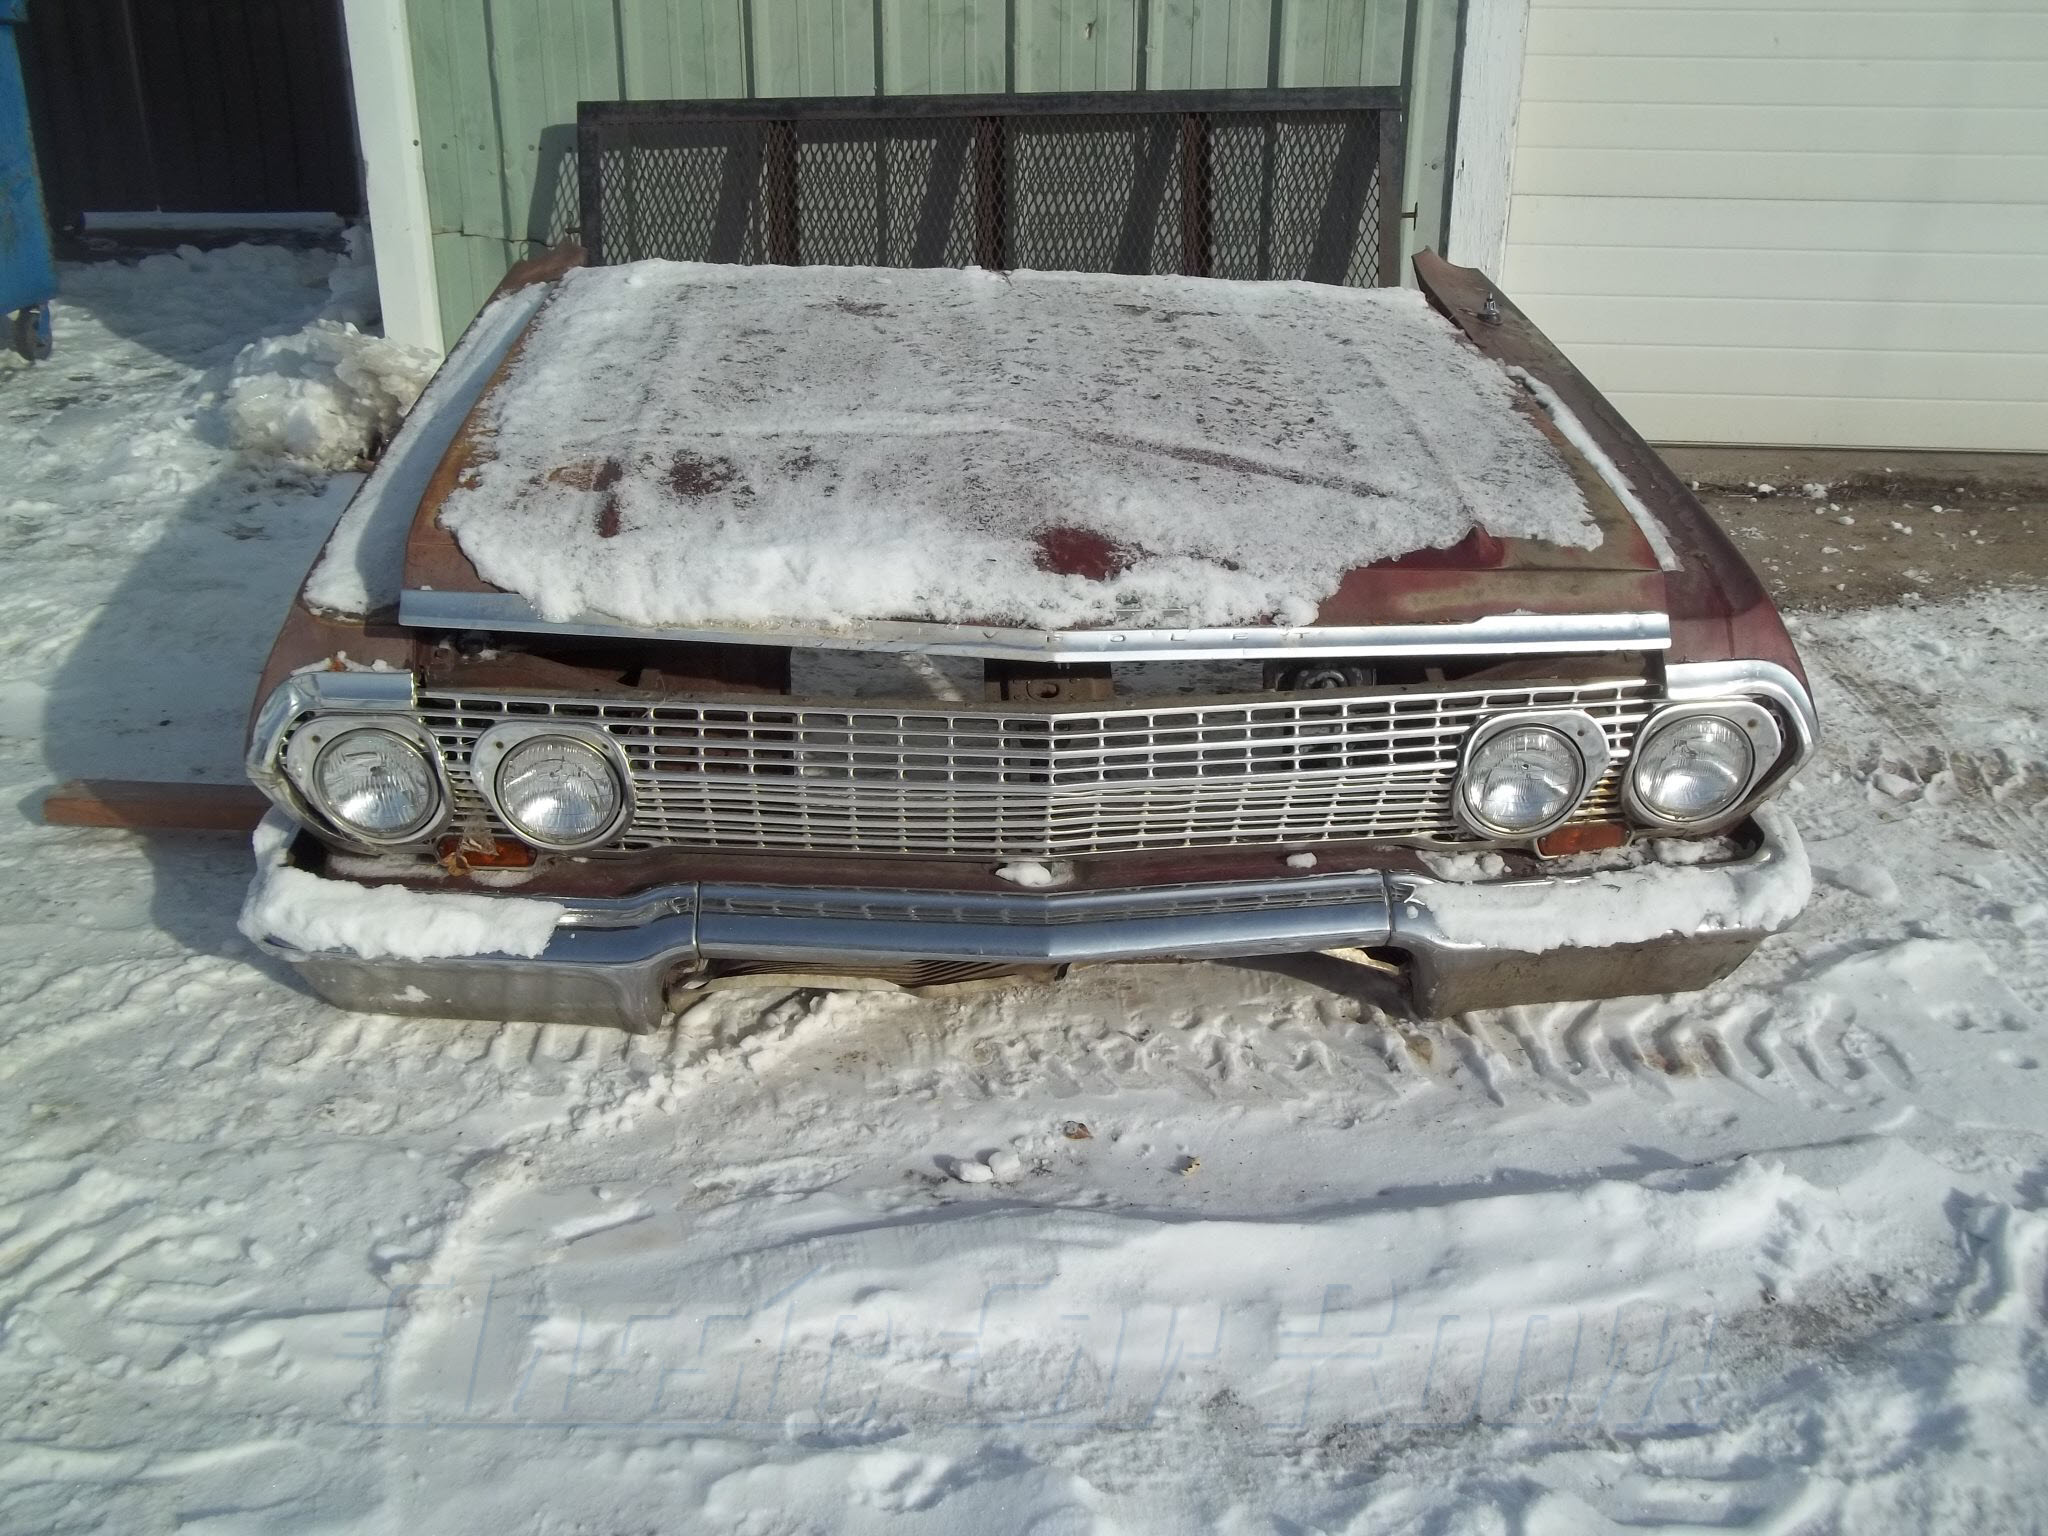 1963 Chevy front